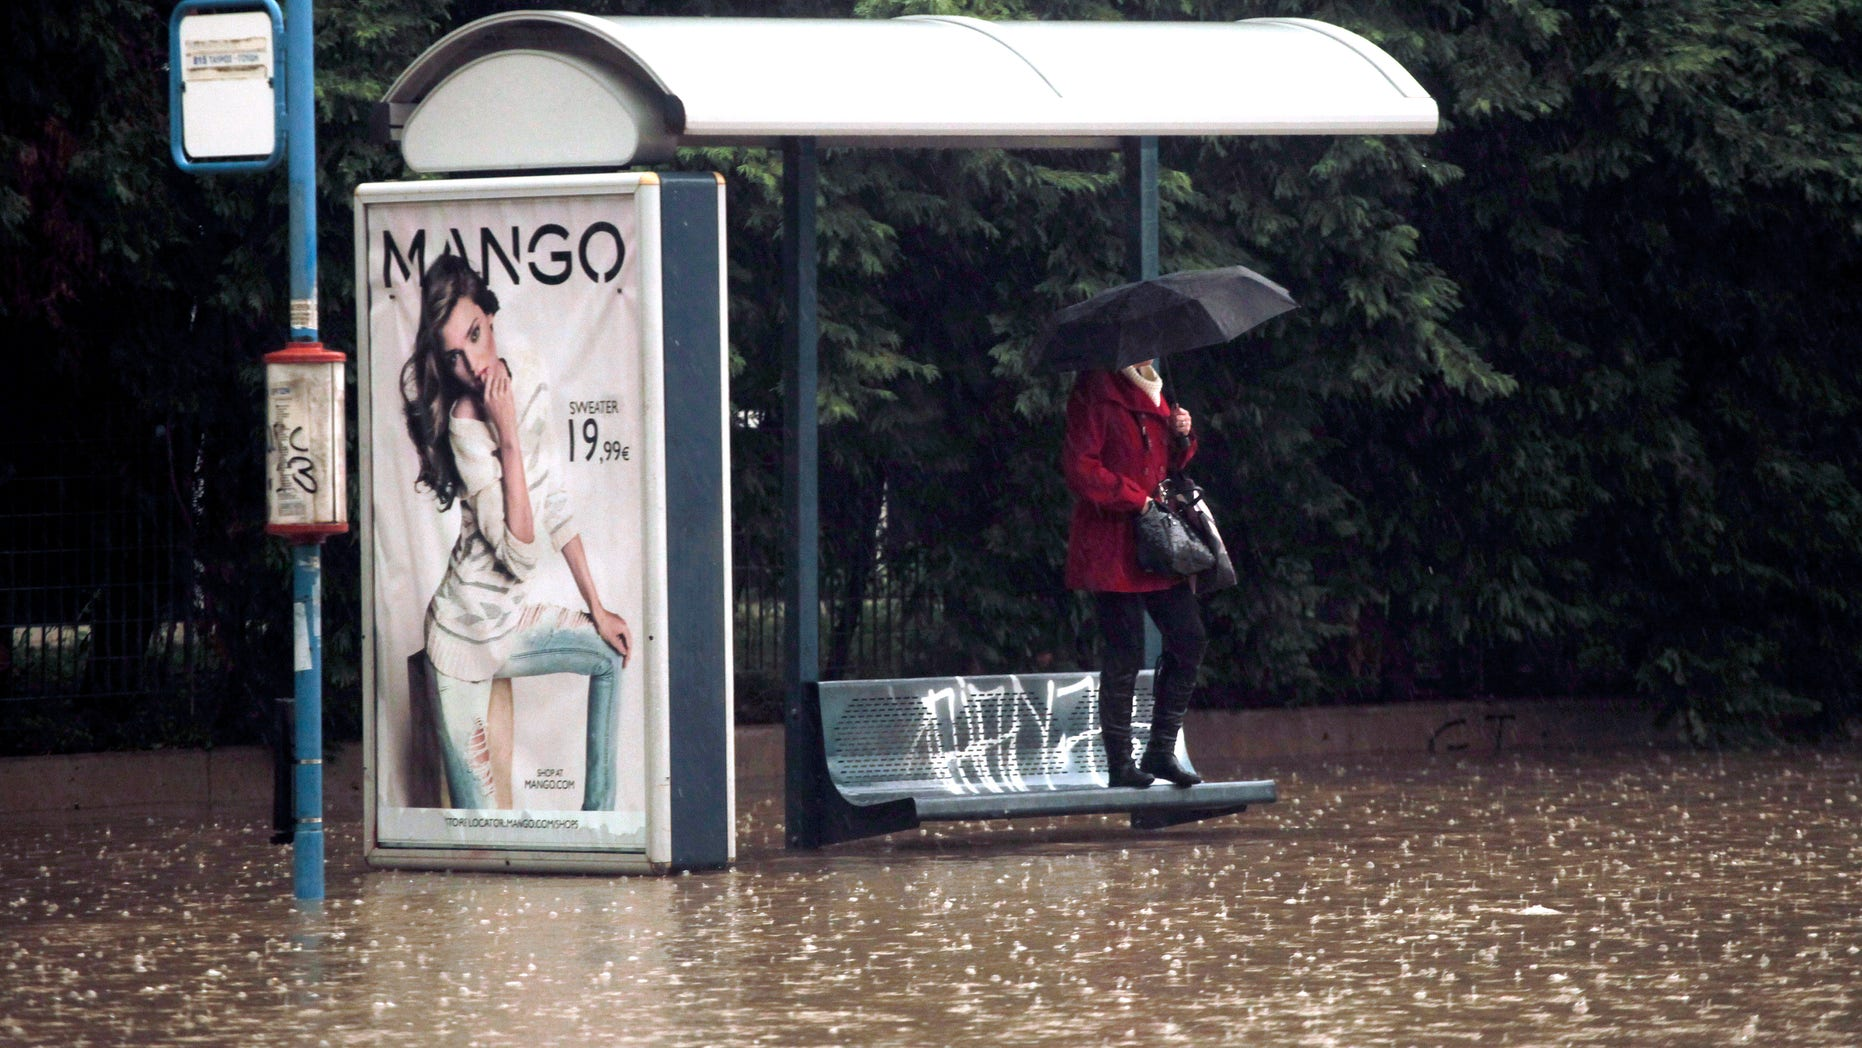 A woman shelters from the rain and the flodding at a bus stop, by standing on a bench, on a flooded highway linking Athens with its port of Piraeus, during a rainstorm on Friday, Feb. 22, 2013. Hours of heavy rainfall in Athens caused extensive flooding, inundating basements and forcing authorities to close major roads and a central subway station. The Greek fire brigade says it received more than 900 calls to pump out water in the greater Athens region Friday. (AP Photo/Petros Giannakouris)